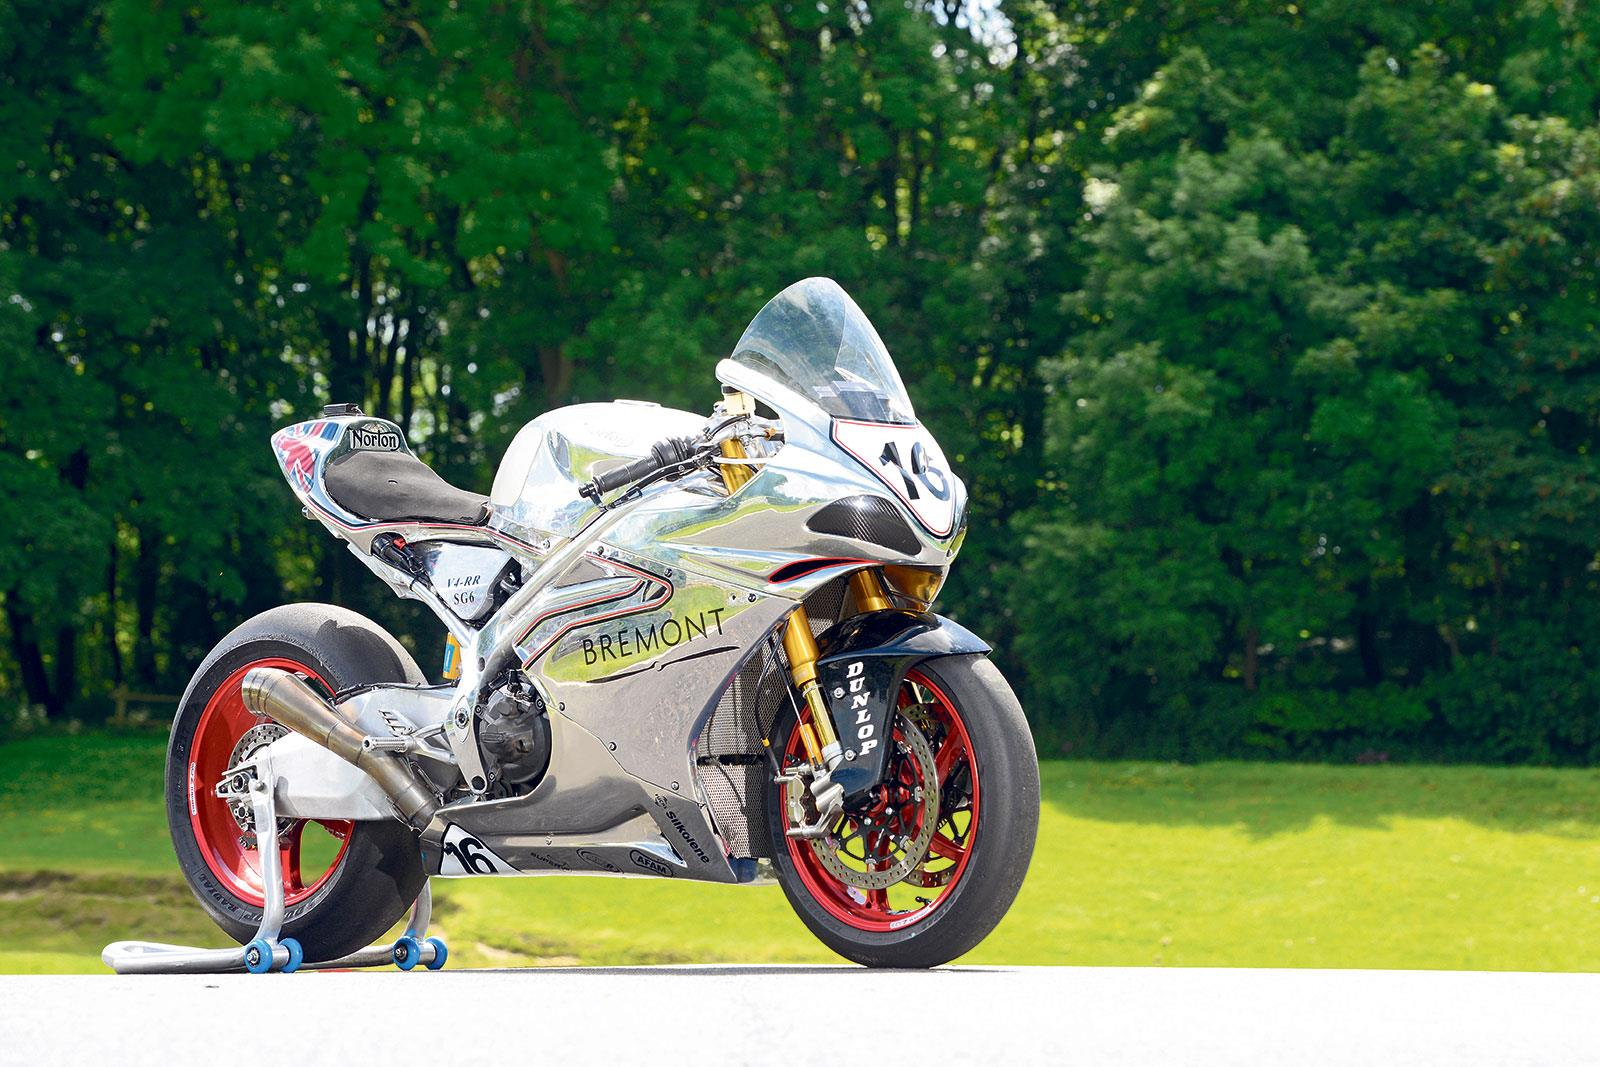 Norton SG6 TT race bike